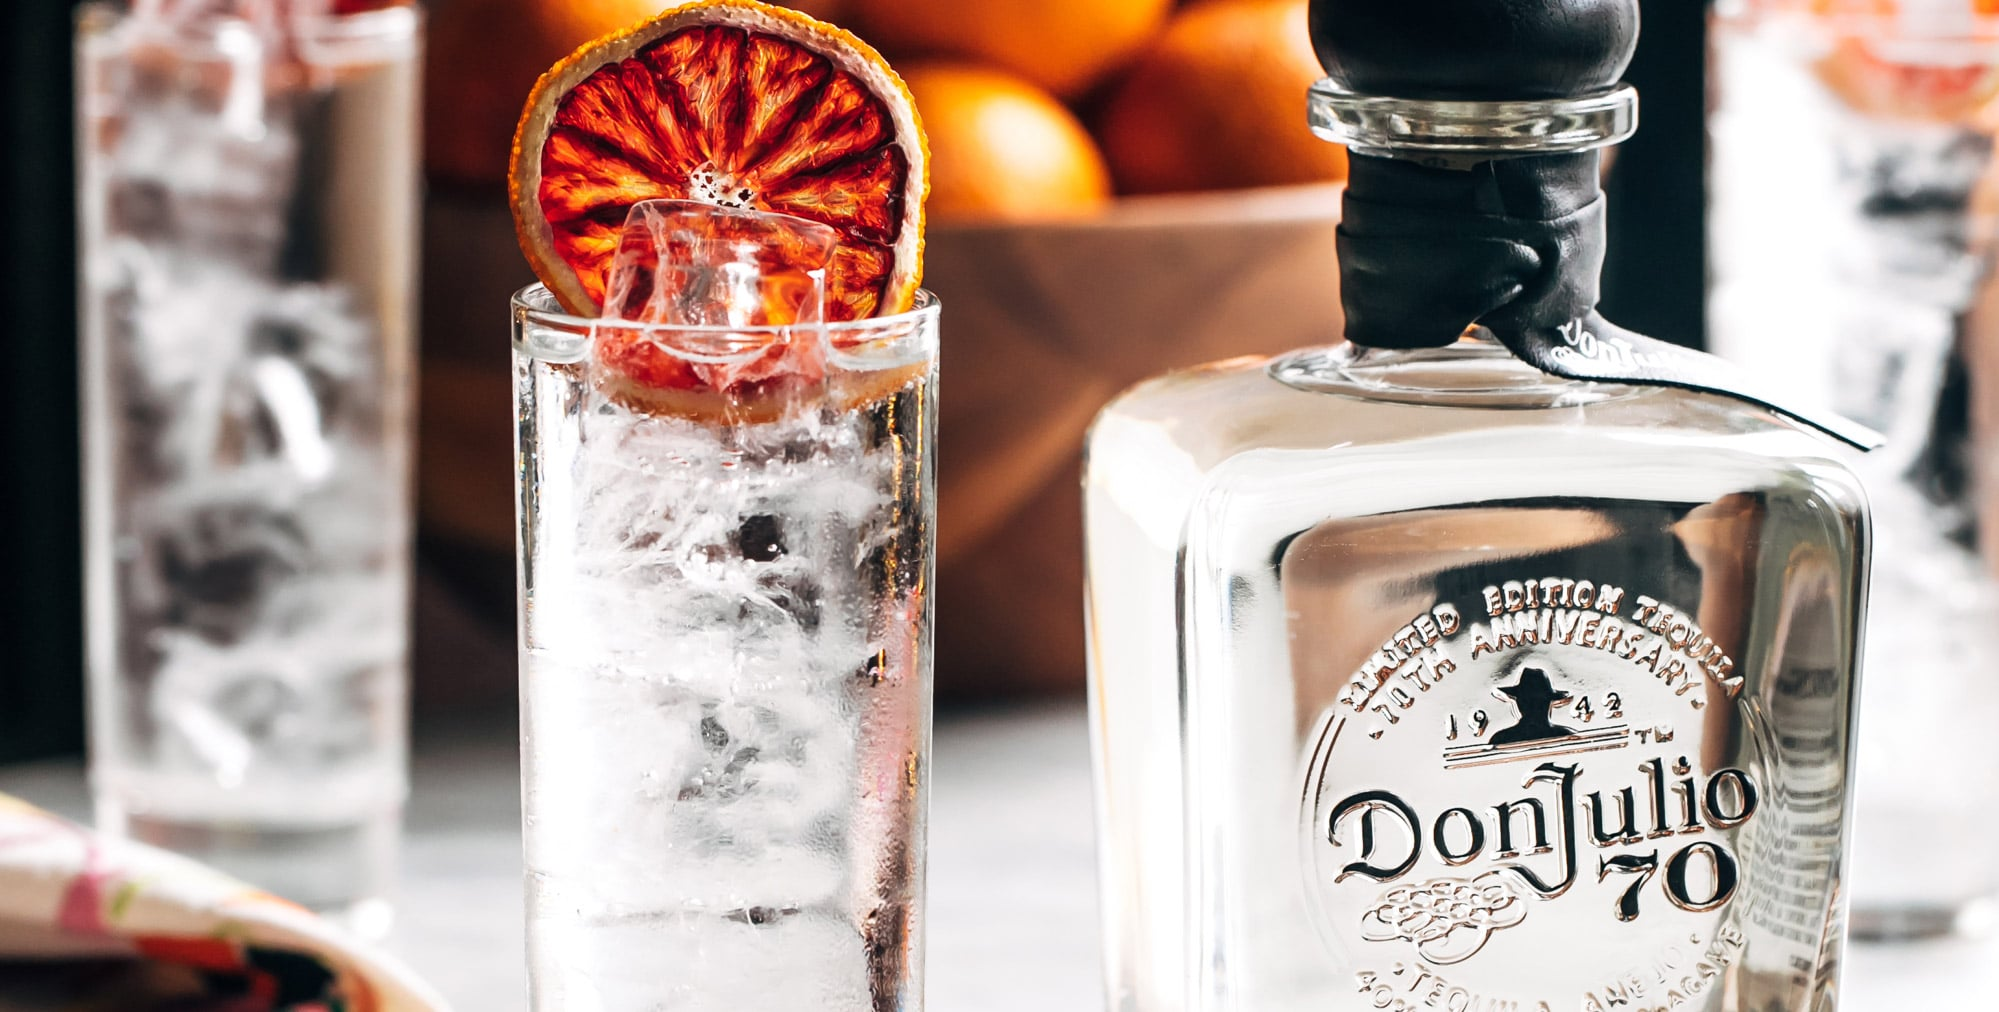 Glass of Don Julio 70 & Soda made with Don Julio 70 Anejo Claro Tequila